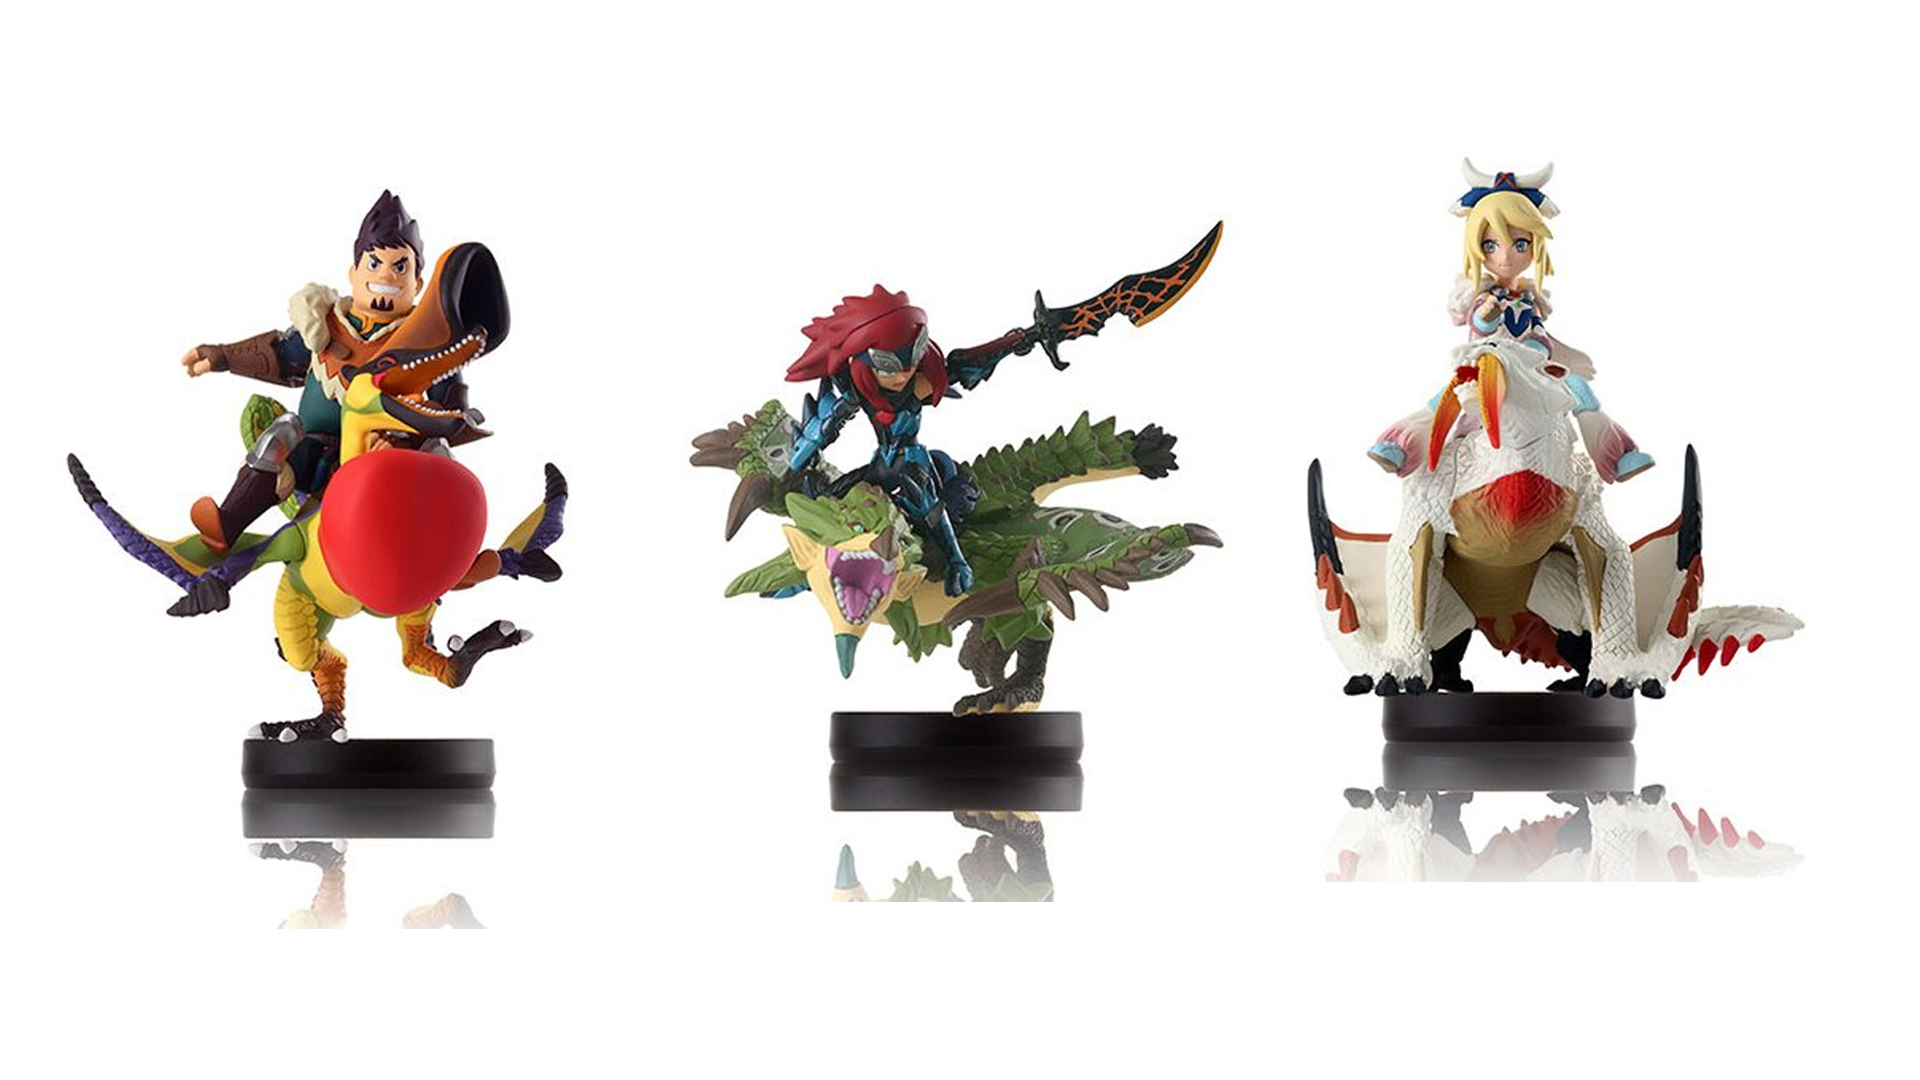 Monster_Hunter_Stories_amiibo_triple_pack.jpg